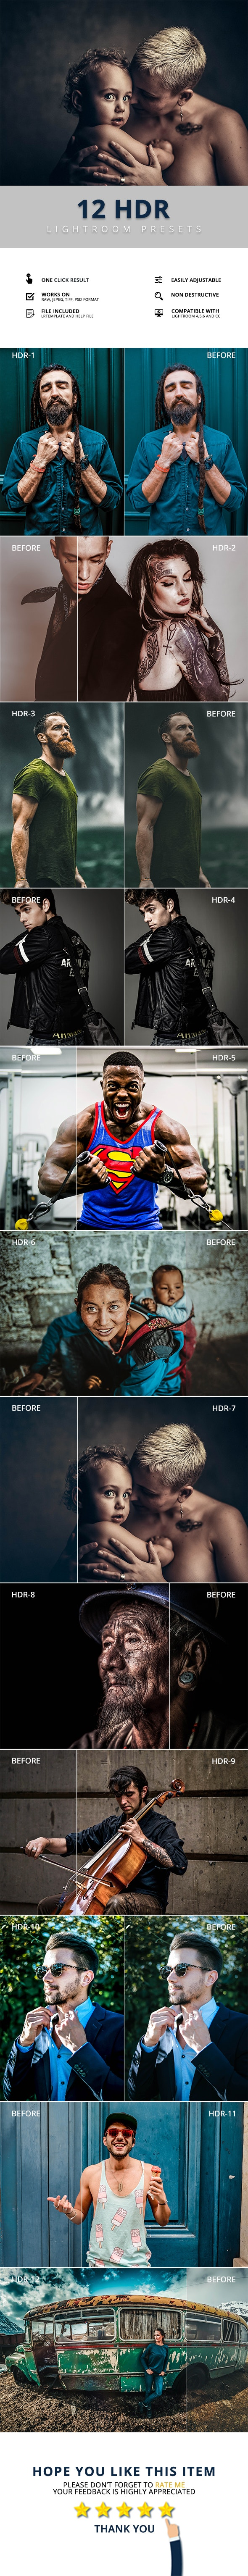 12 Hdr Lightroom Presets - Lightroom Presets Add-ons